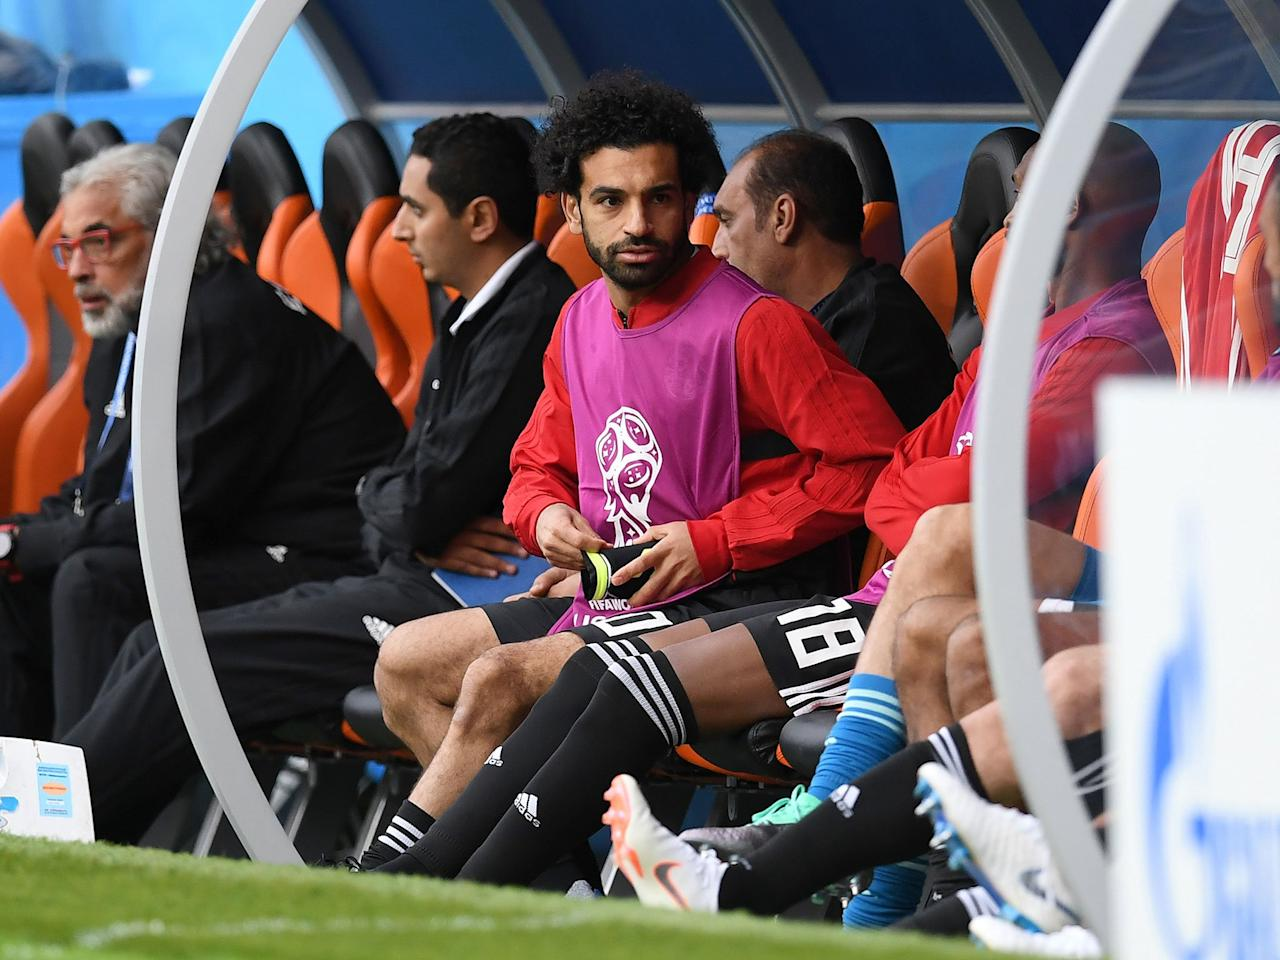 World Cup 2018: Mohamed Salah fit to play as agent puts pressure on Egypt coach to start Liverpool star